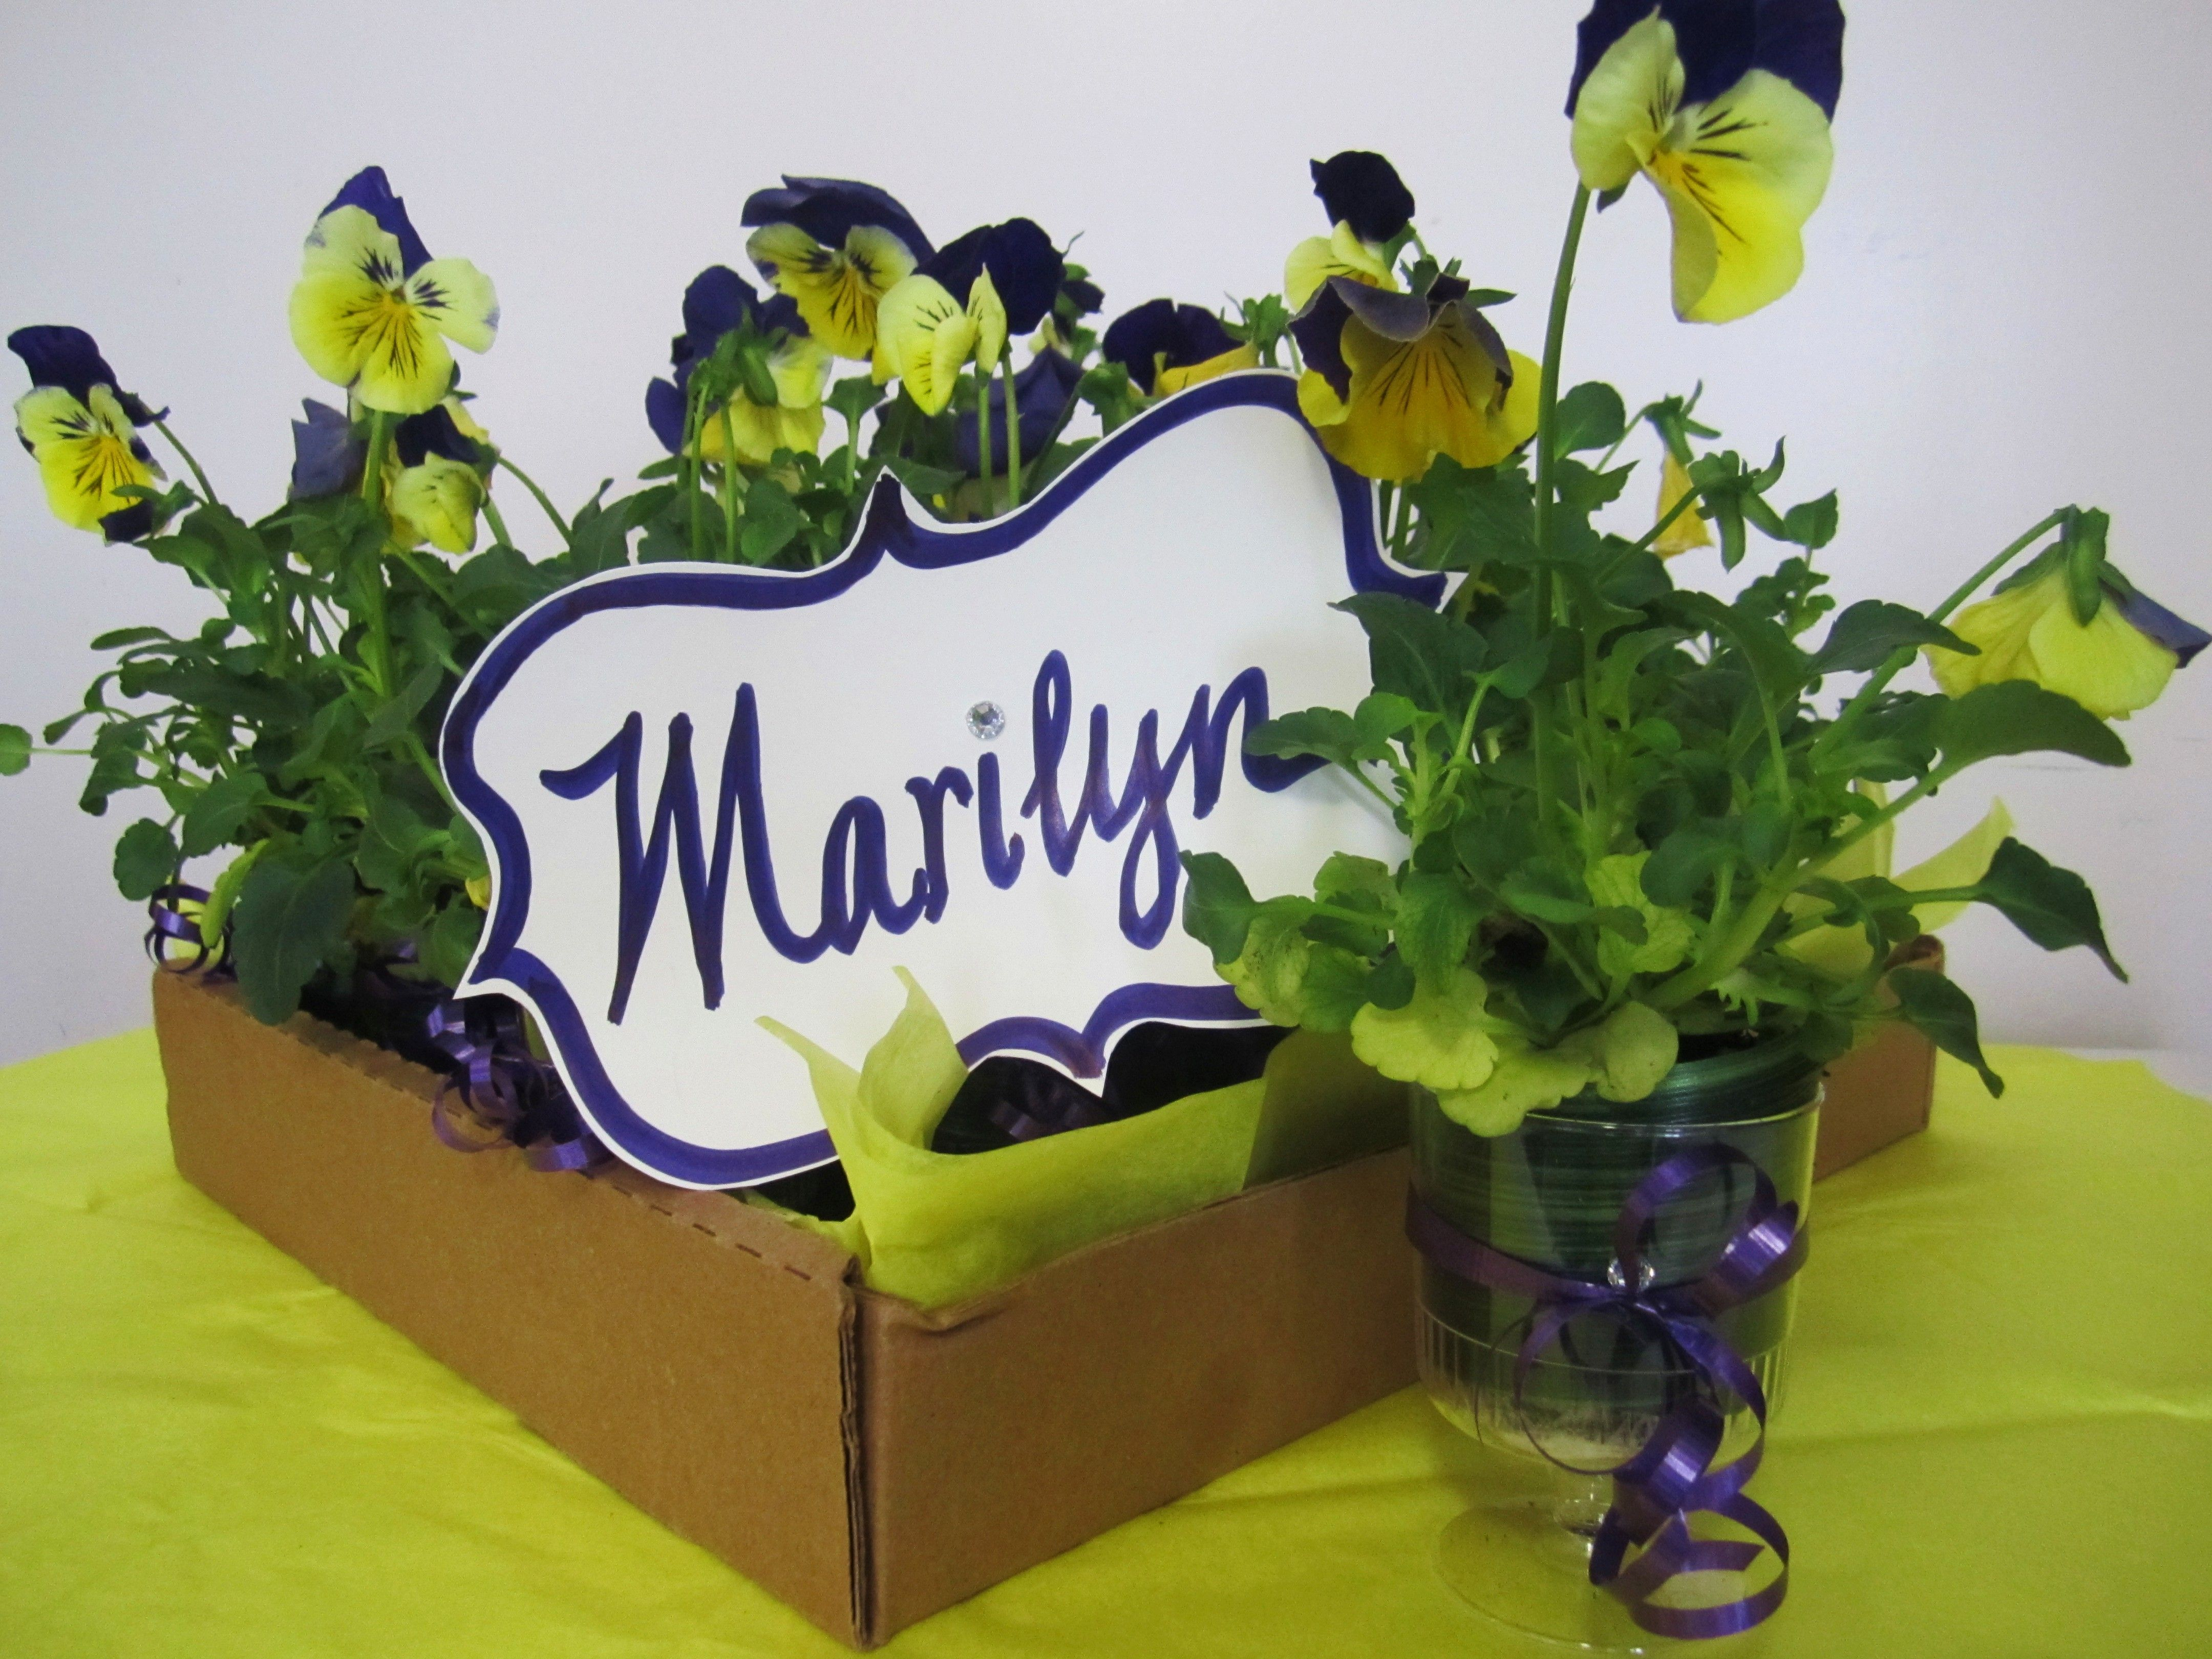 Simple Petunia Favors For A Garden Lover Marilyn S Retirement Party April 17 2013 By Davis Floral Cre Retirement Party Favors Retirement Gifts Party Favors [ 3240 x 4320 Pixel ]